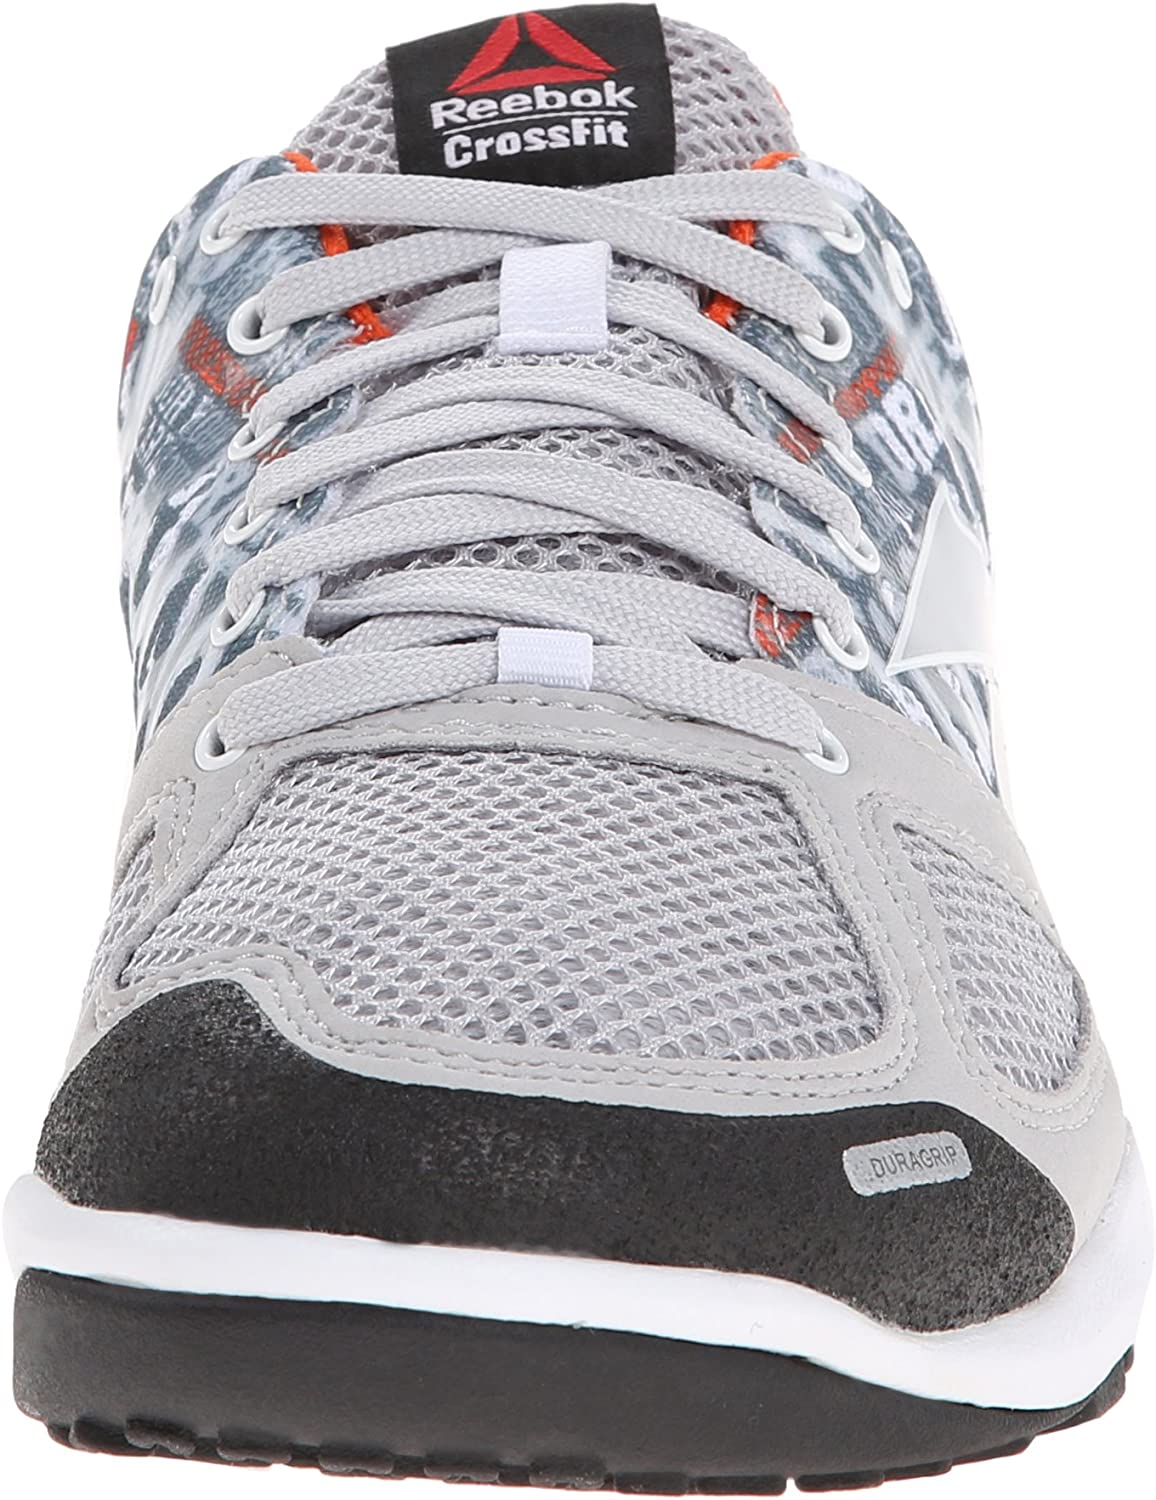 Reebok Women's Crossfit Nano 2.0 Training Shoe Steel/White/Iron Stone/Blazing Orange